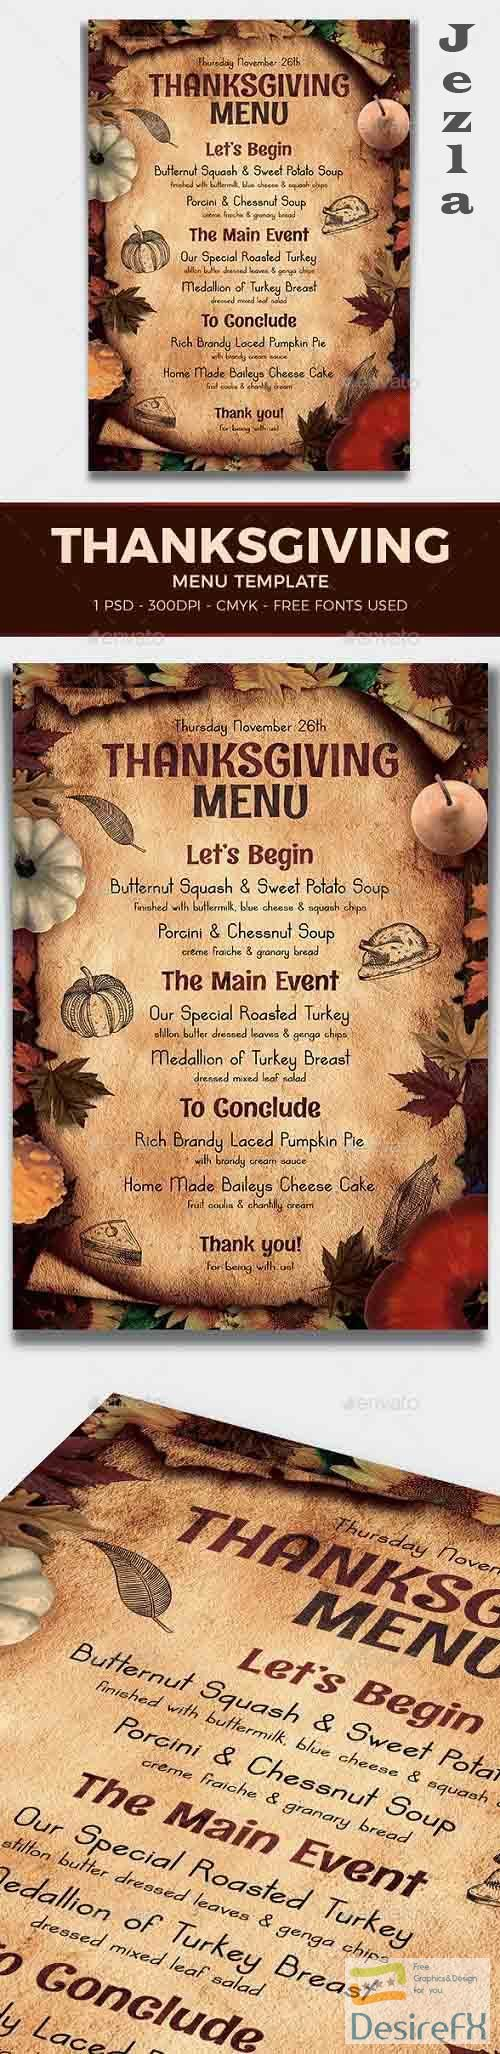 Thanksgiving Menu Template V2 - 17774429 - 887796